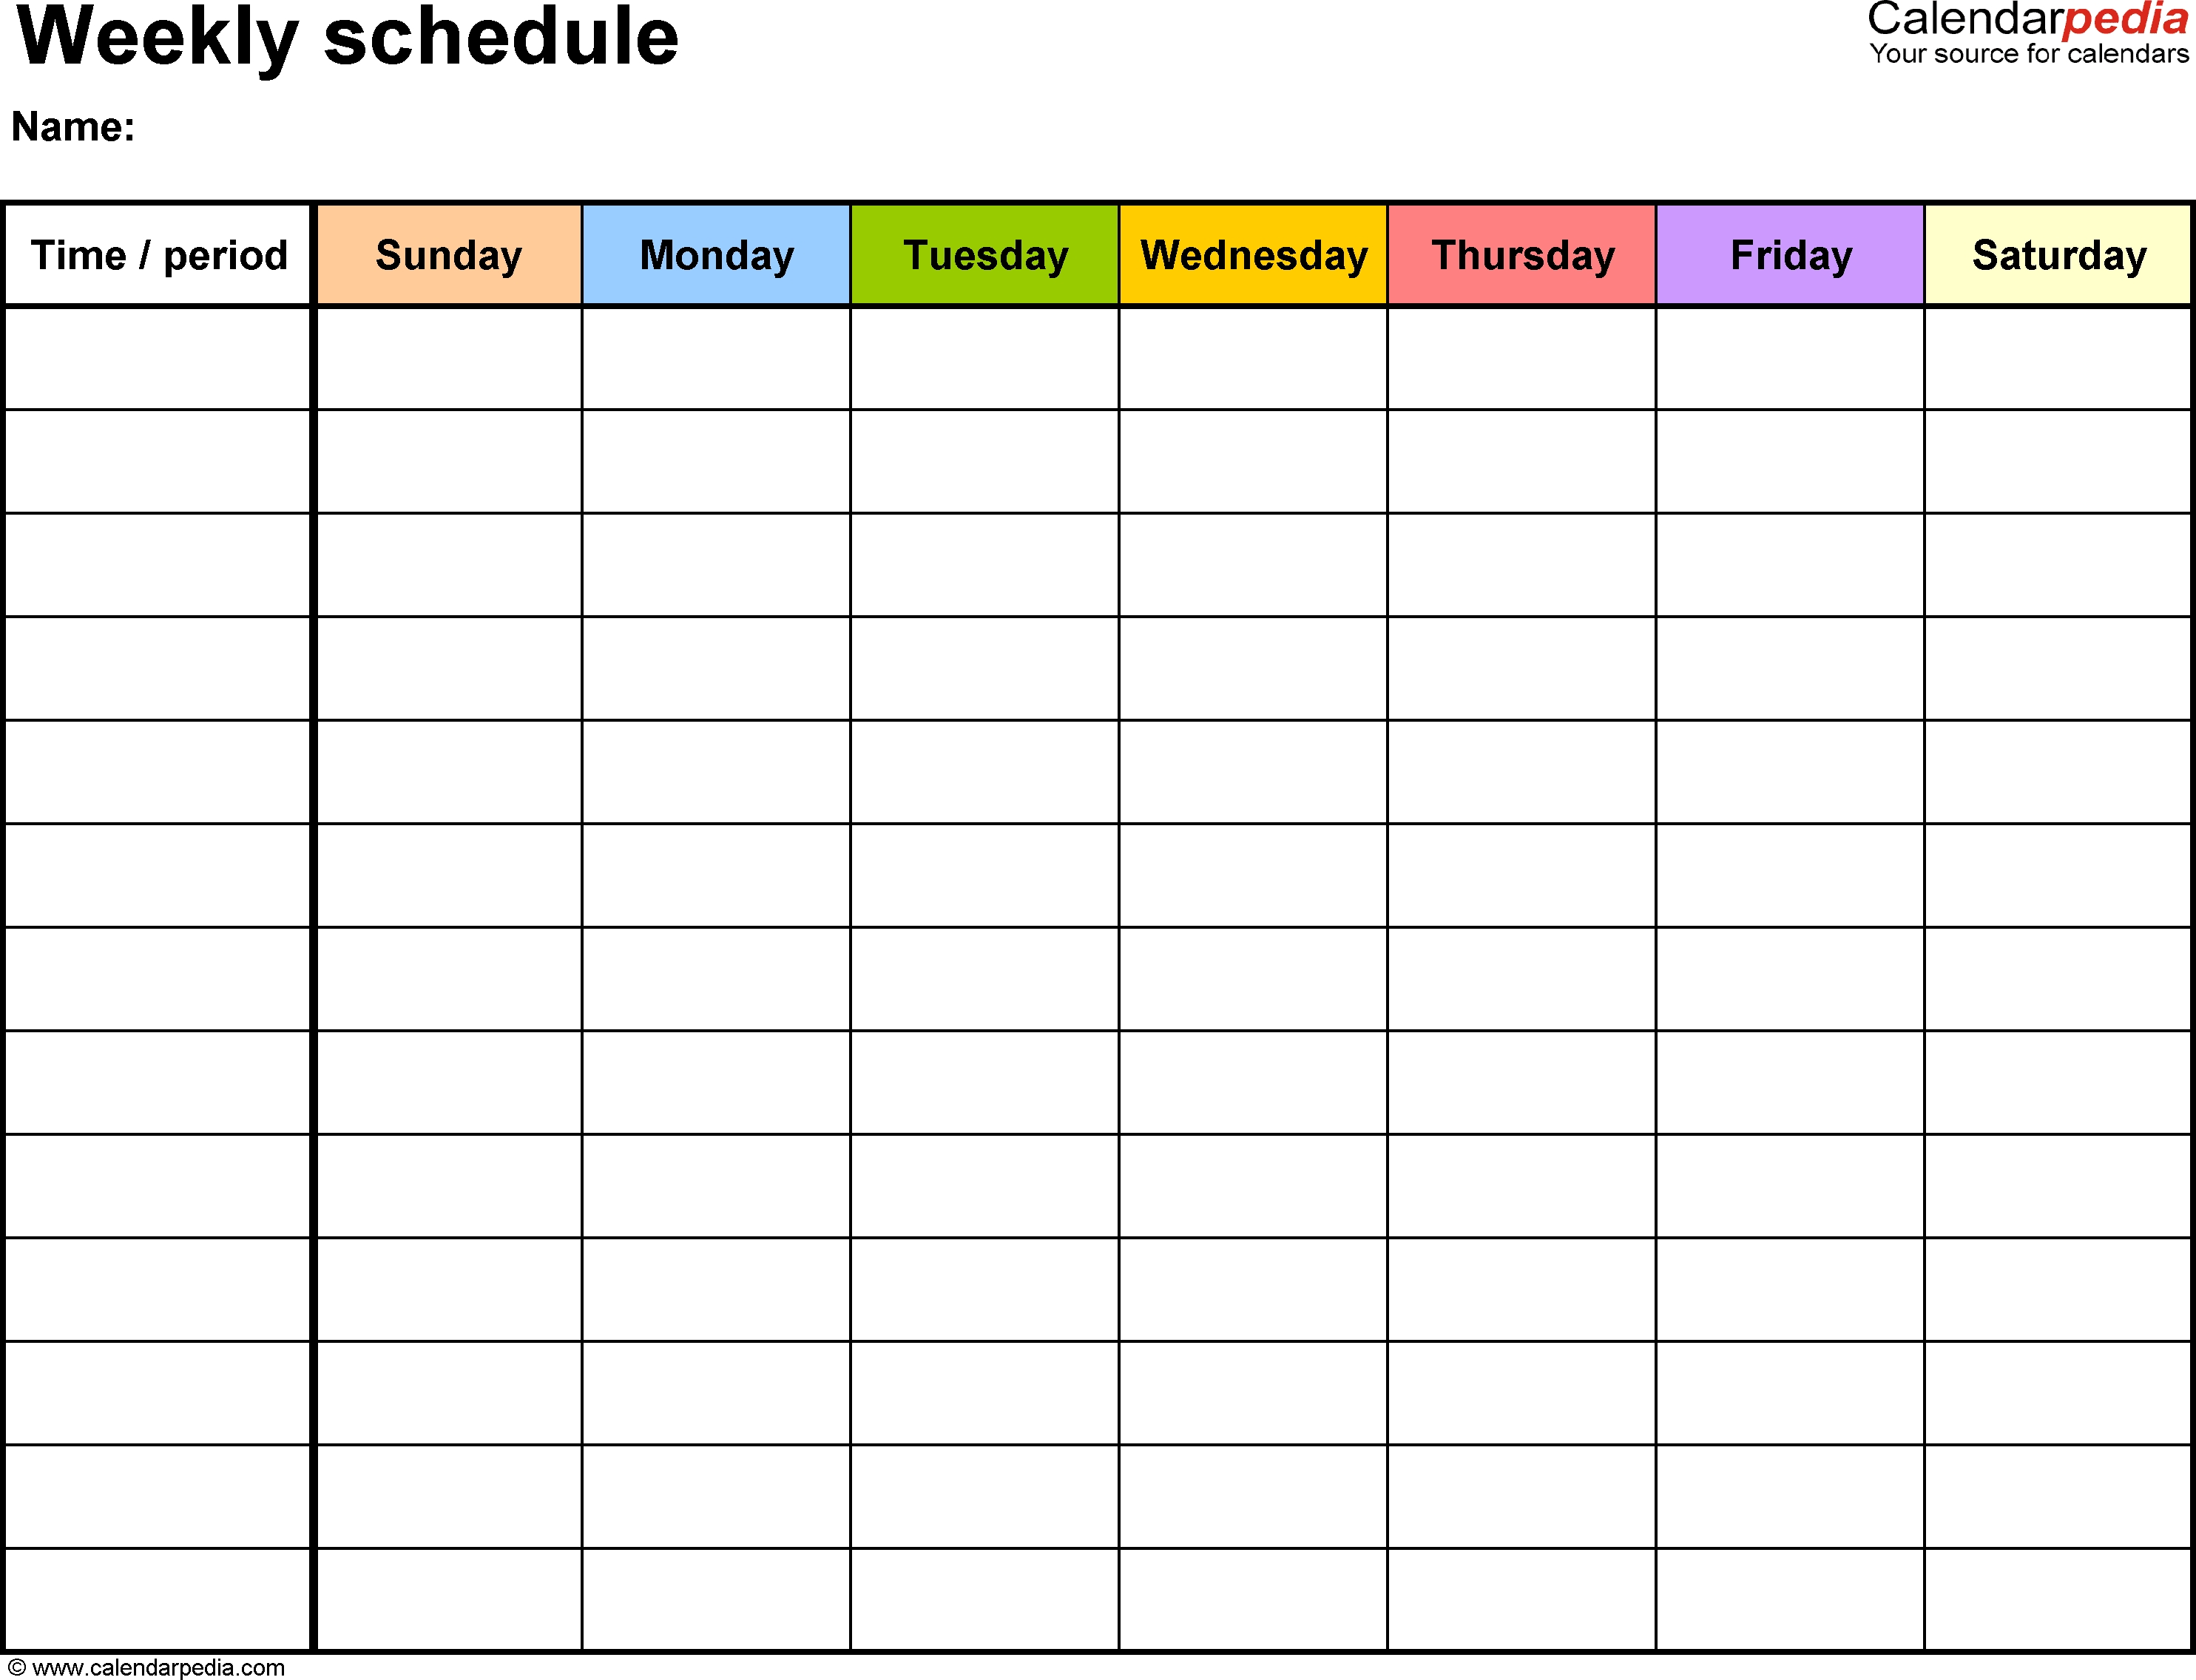 Free Weekly Schedule Templates For Excel - 18 Templates pertaining to Weekly Schedule With Blank Time Slots